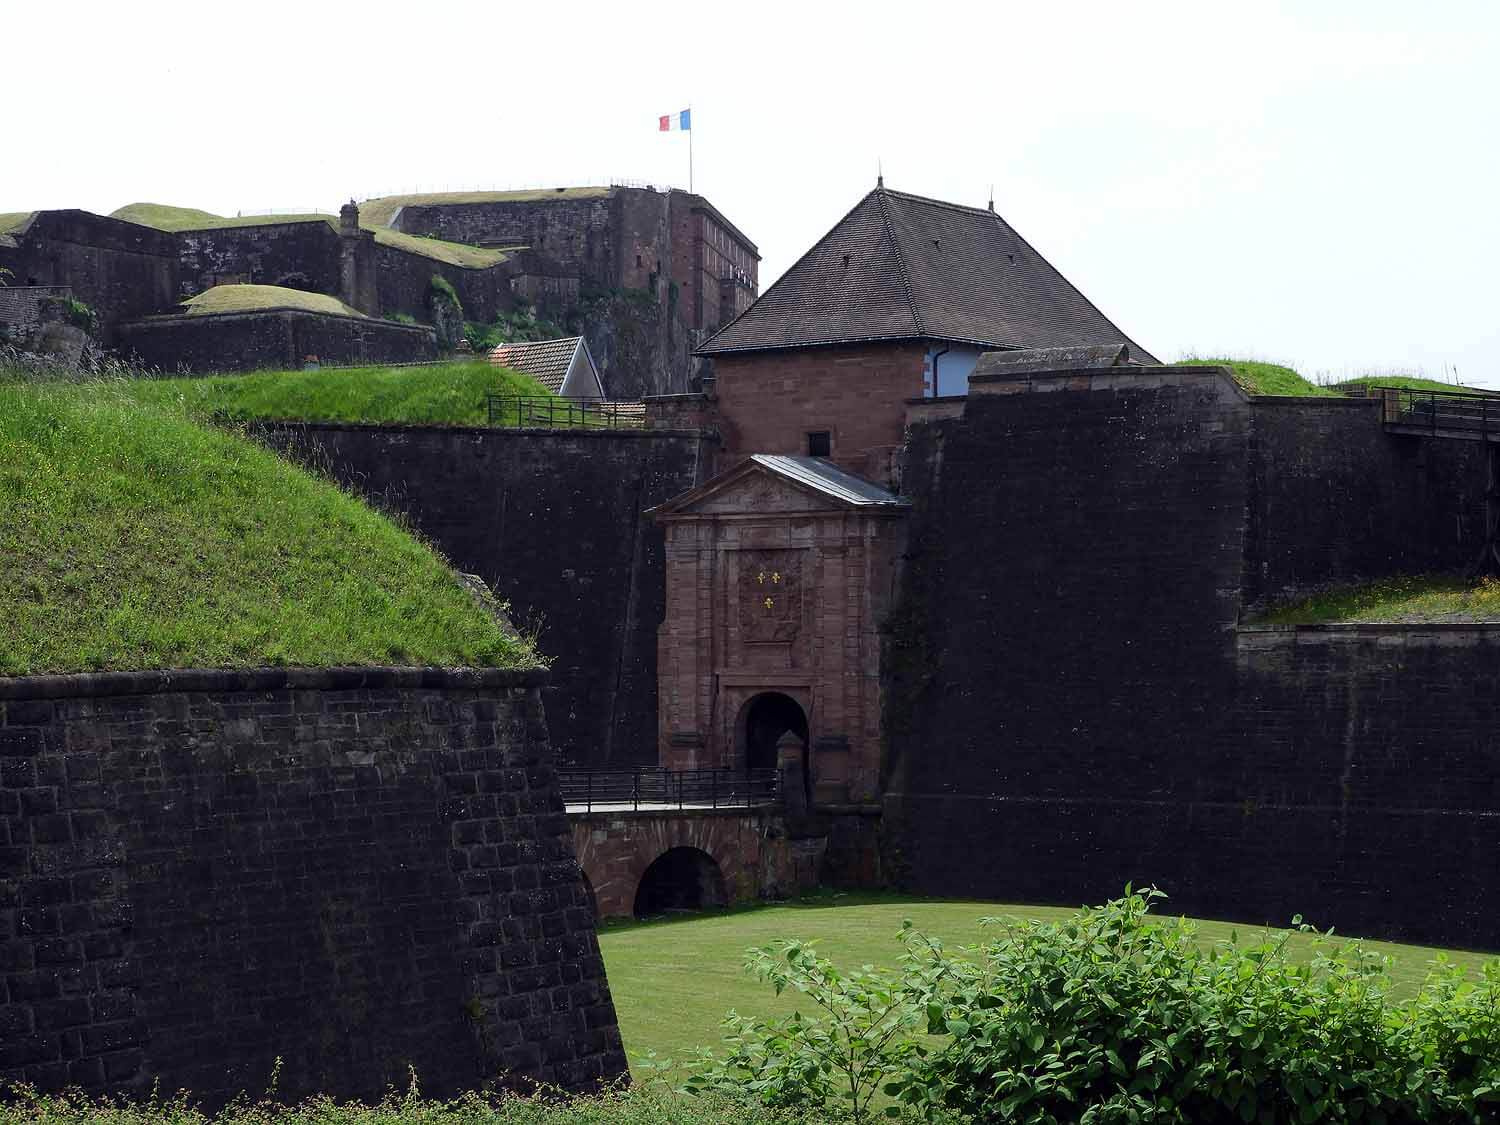 france-belfort-fortress-fort-gate.JPG